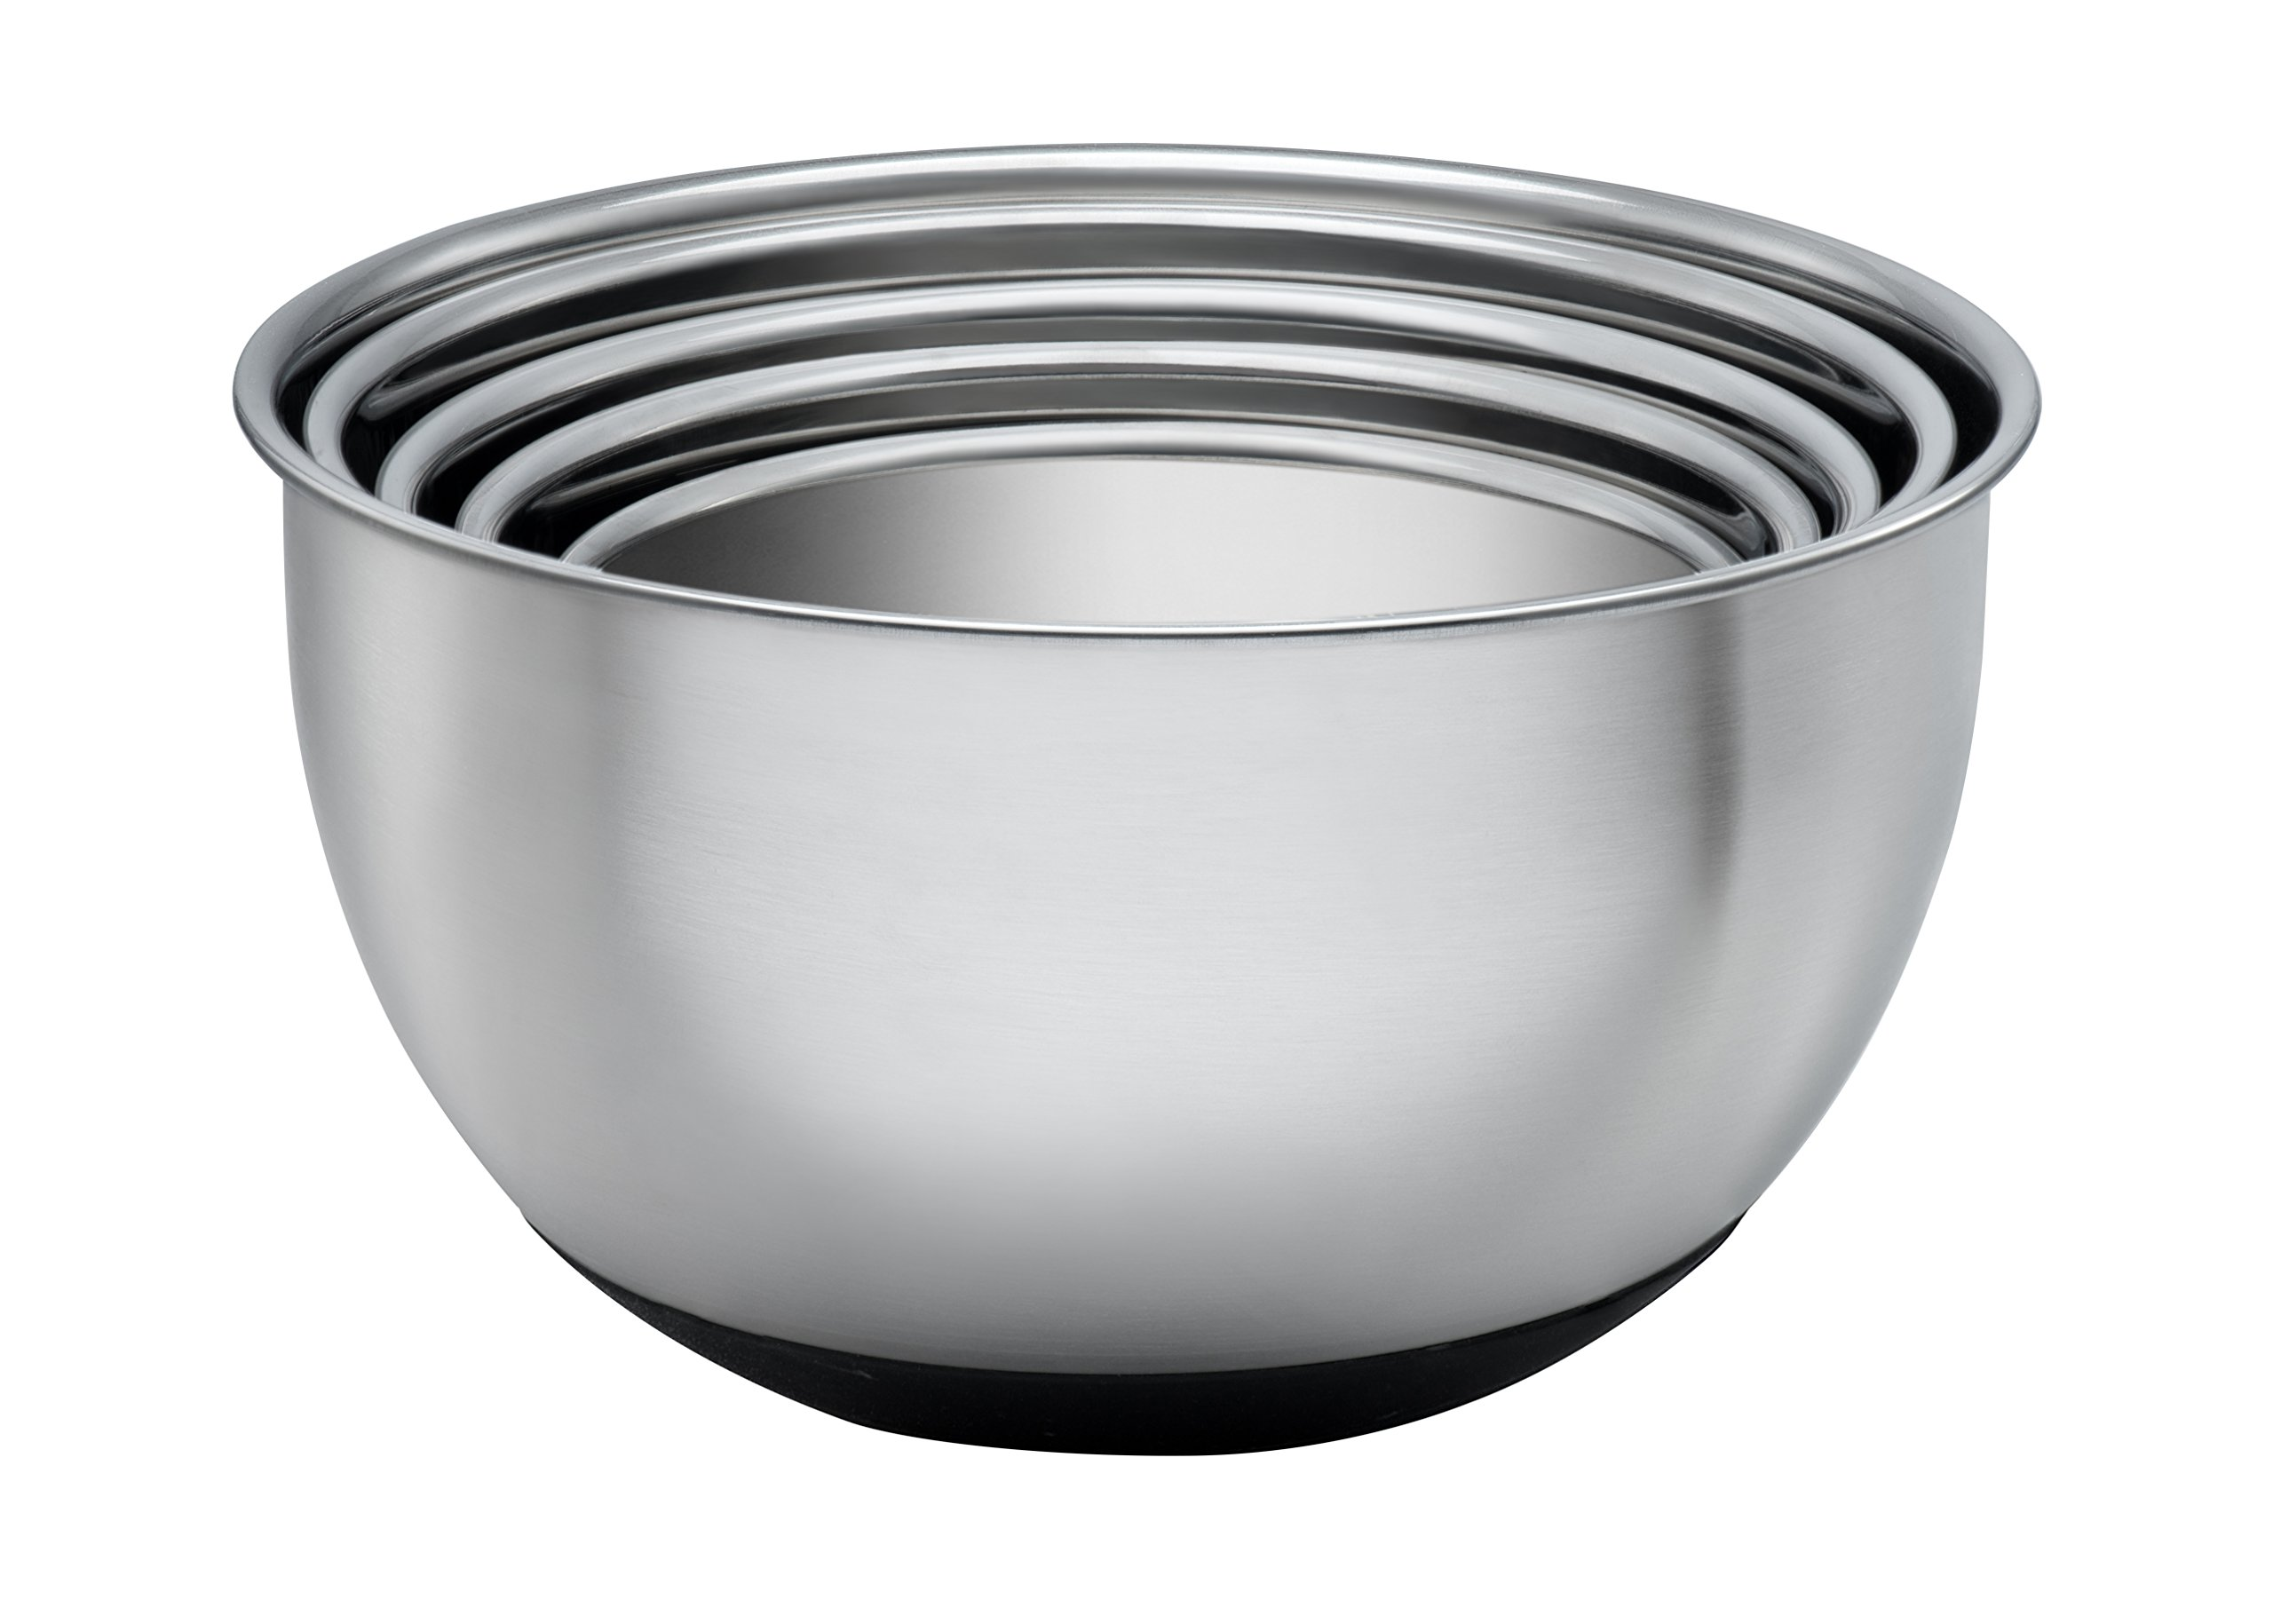 mixing bowl set 5 piece stainless steel lids nested bowls covers graters kitchen 689740862194 ebay. Black Bedroom Furniture Sets. Home Design Ideas